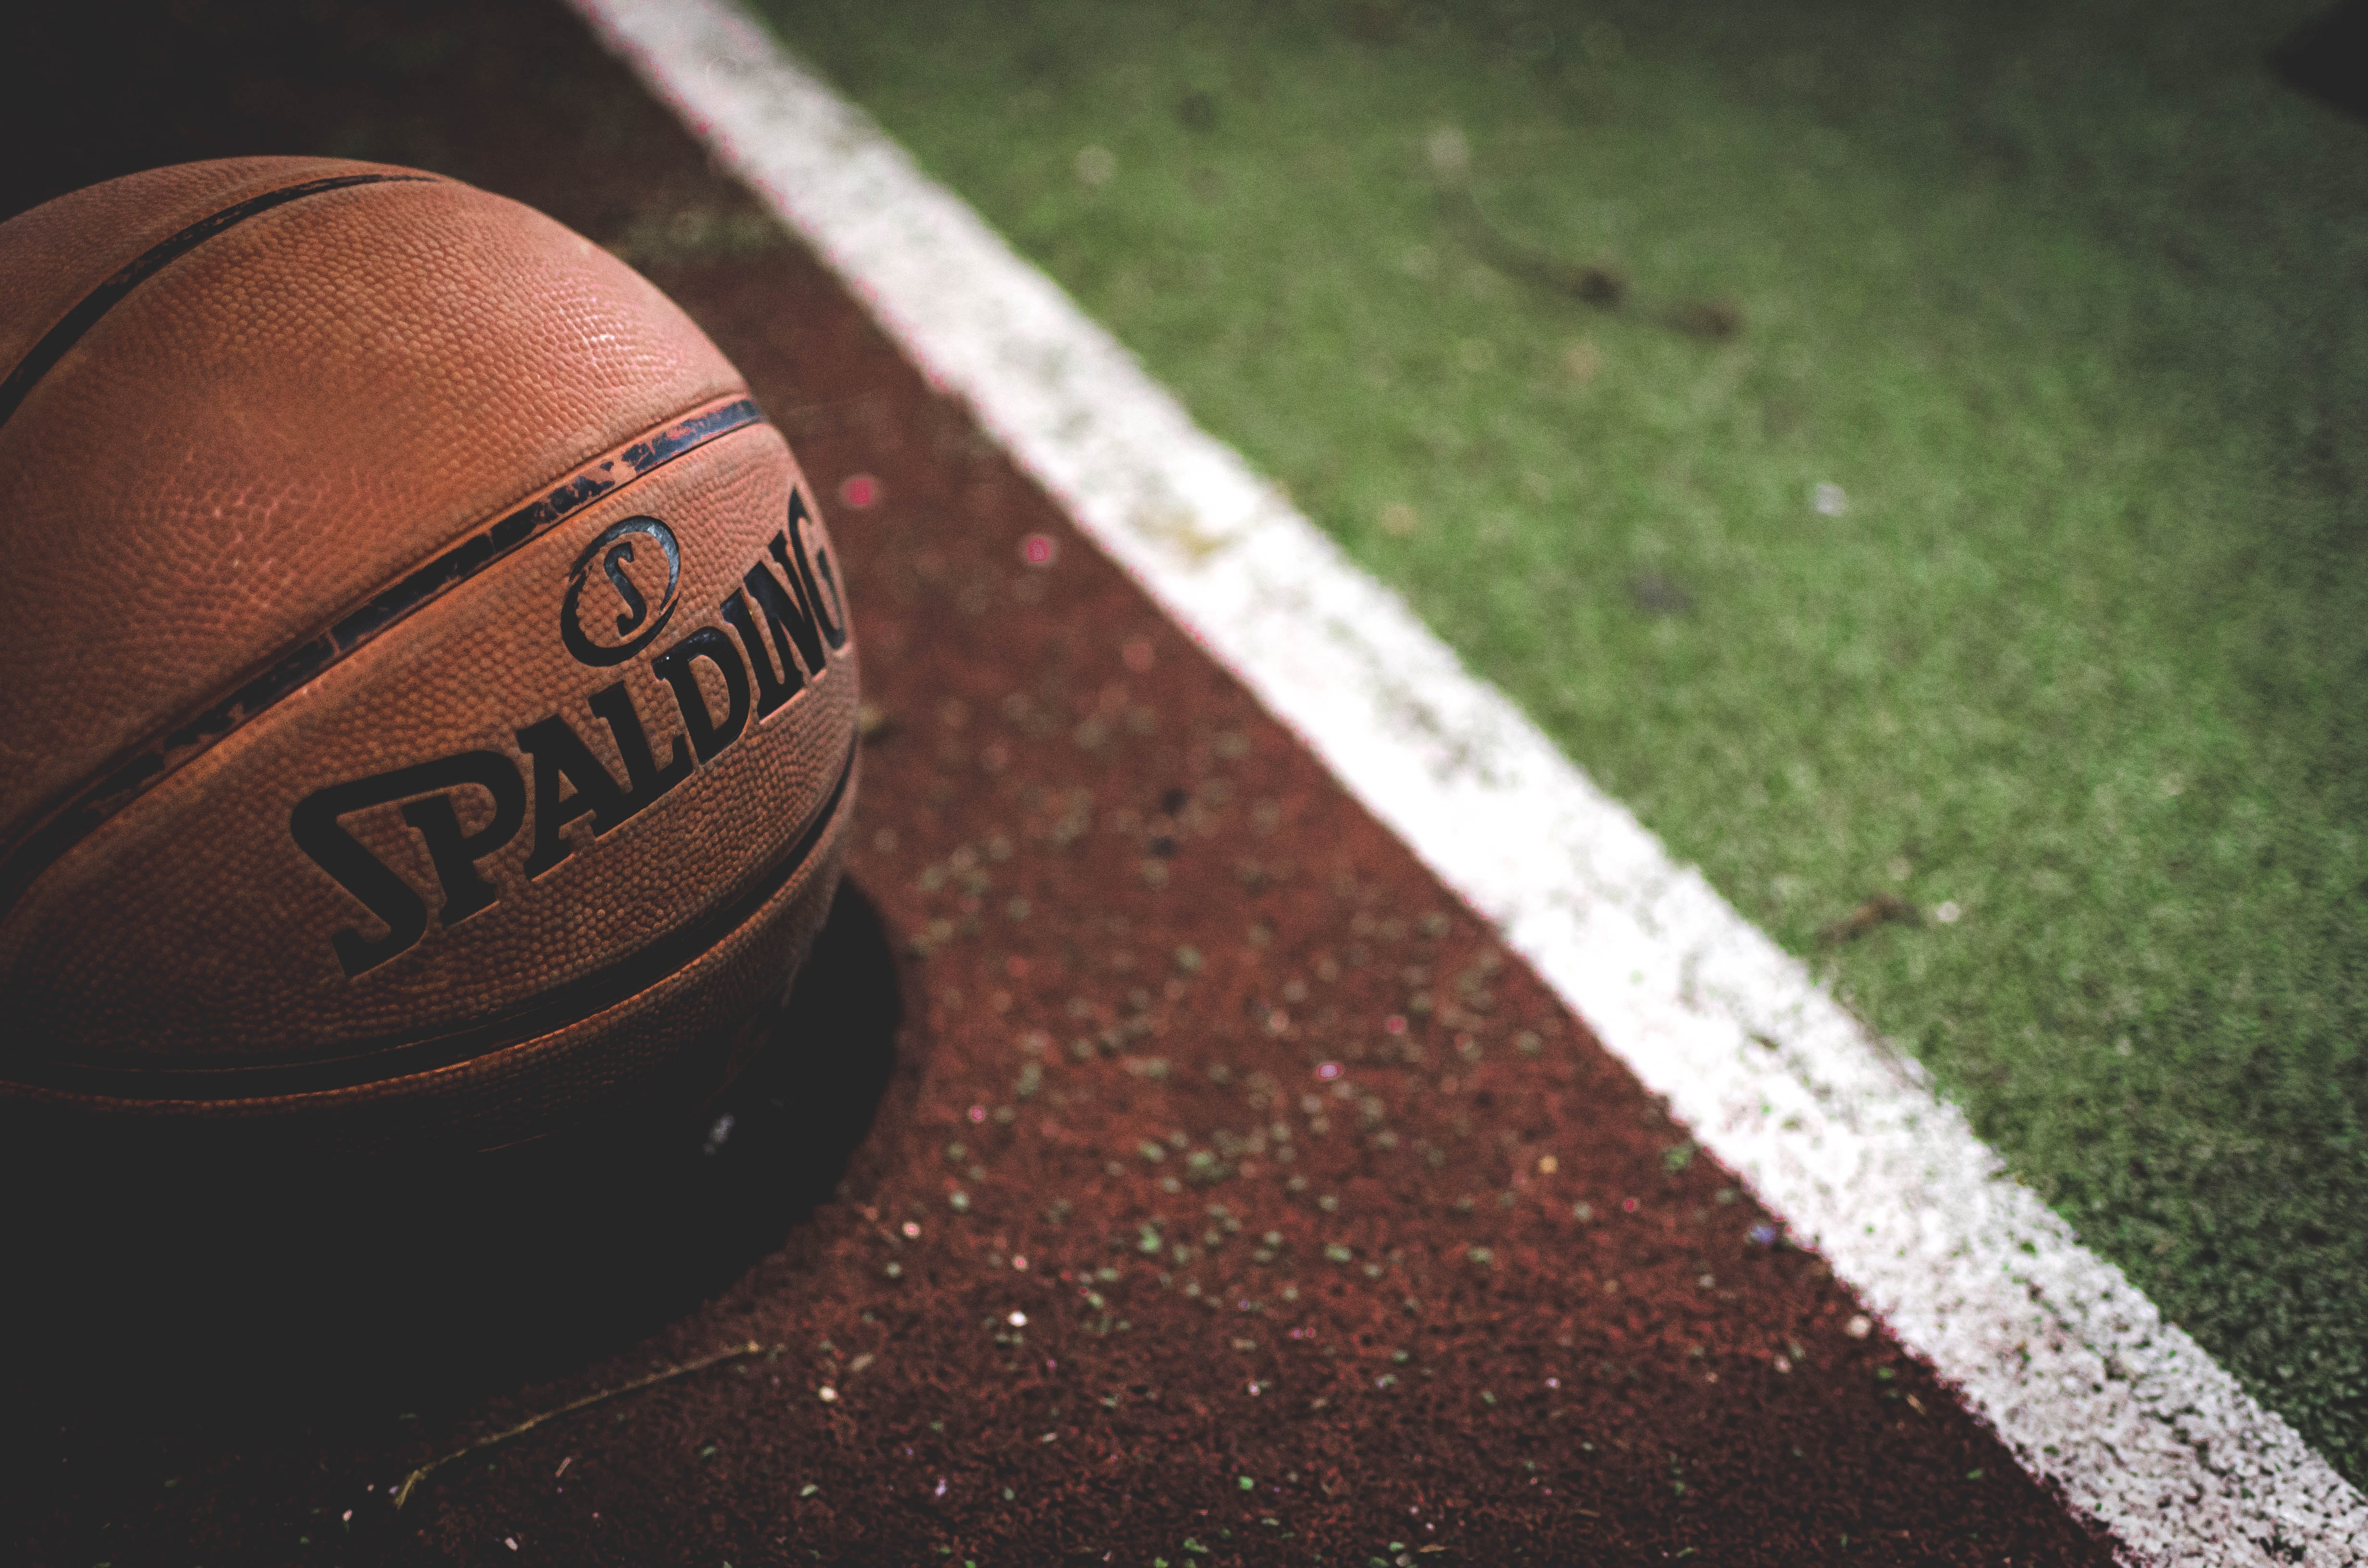 A closeup shot of a Spalding basketball on an outside Istanbul court